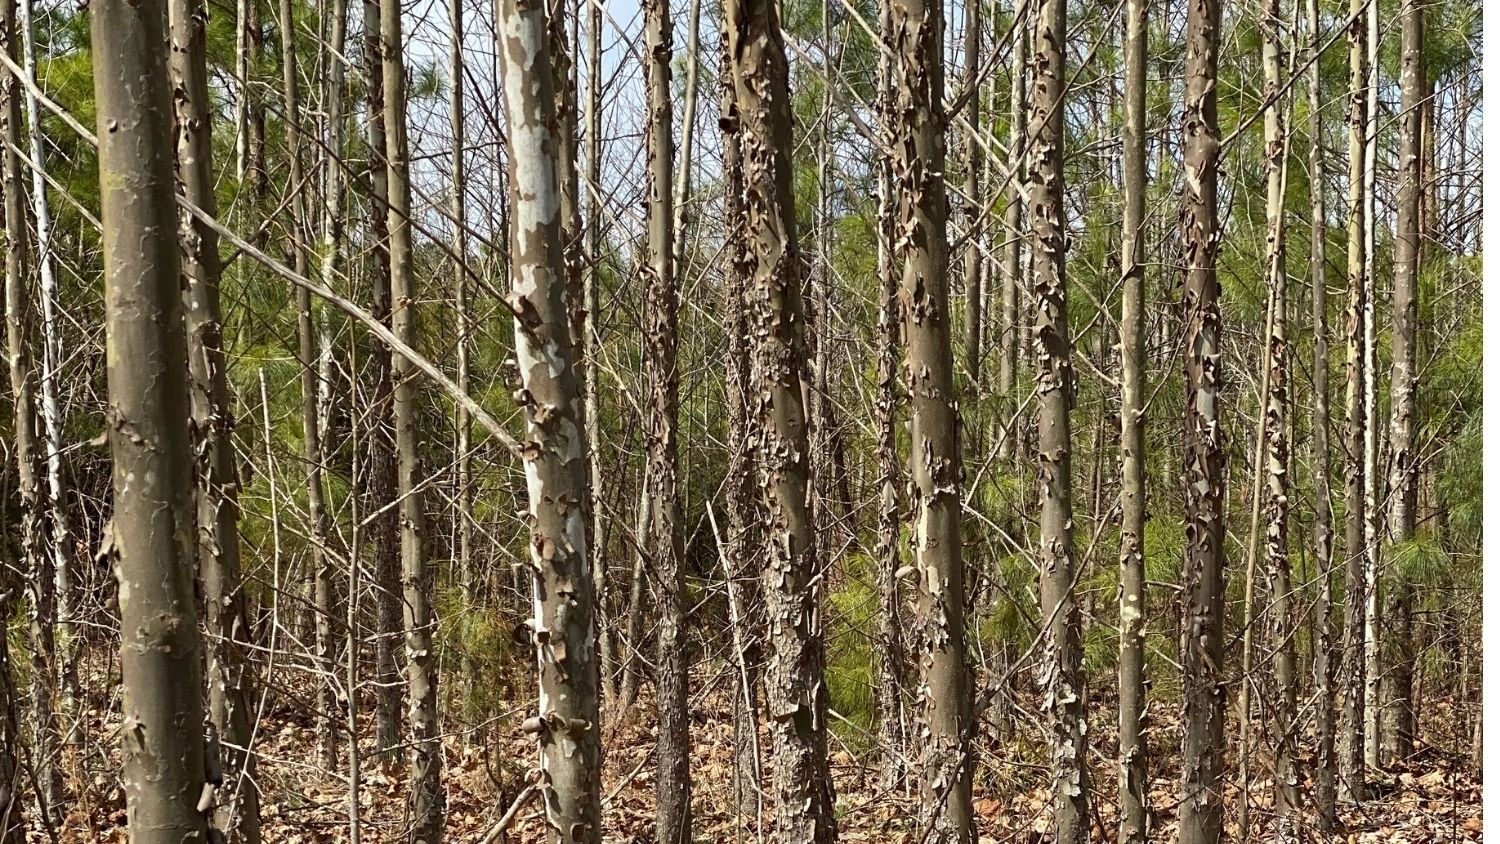 American sycamore grove - Could Sycamore Trees Be an Alternative Source? - Forestry and Environmental Resources Department at NC State